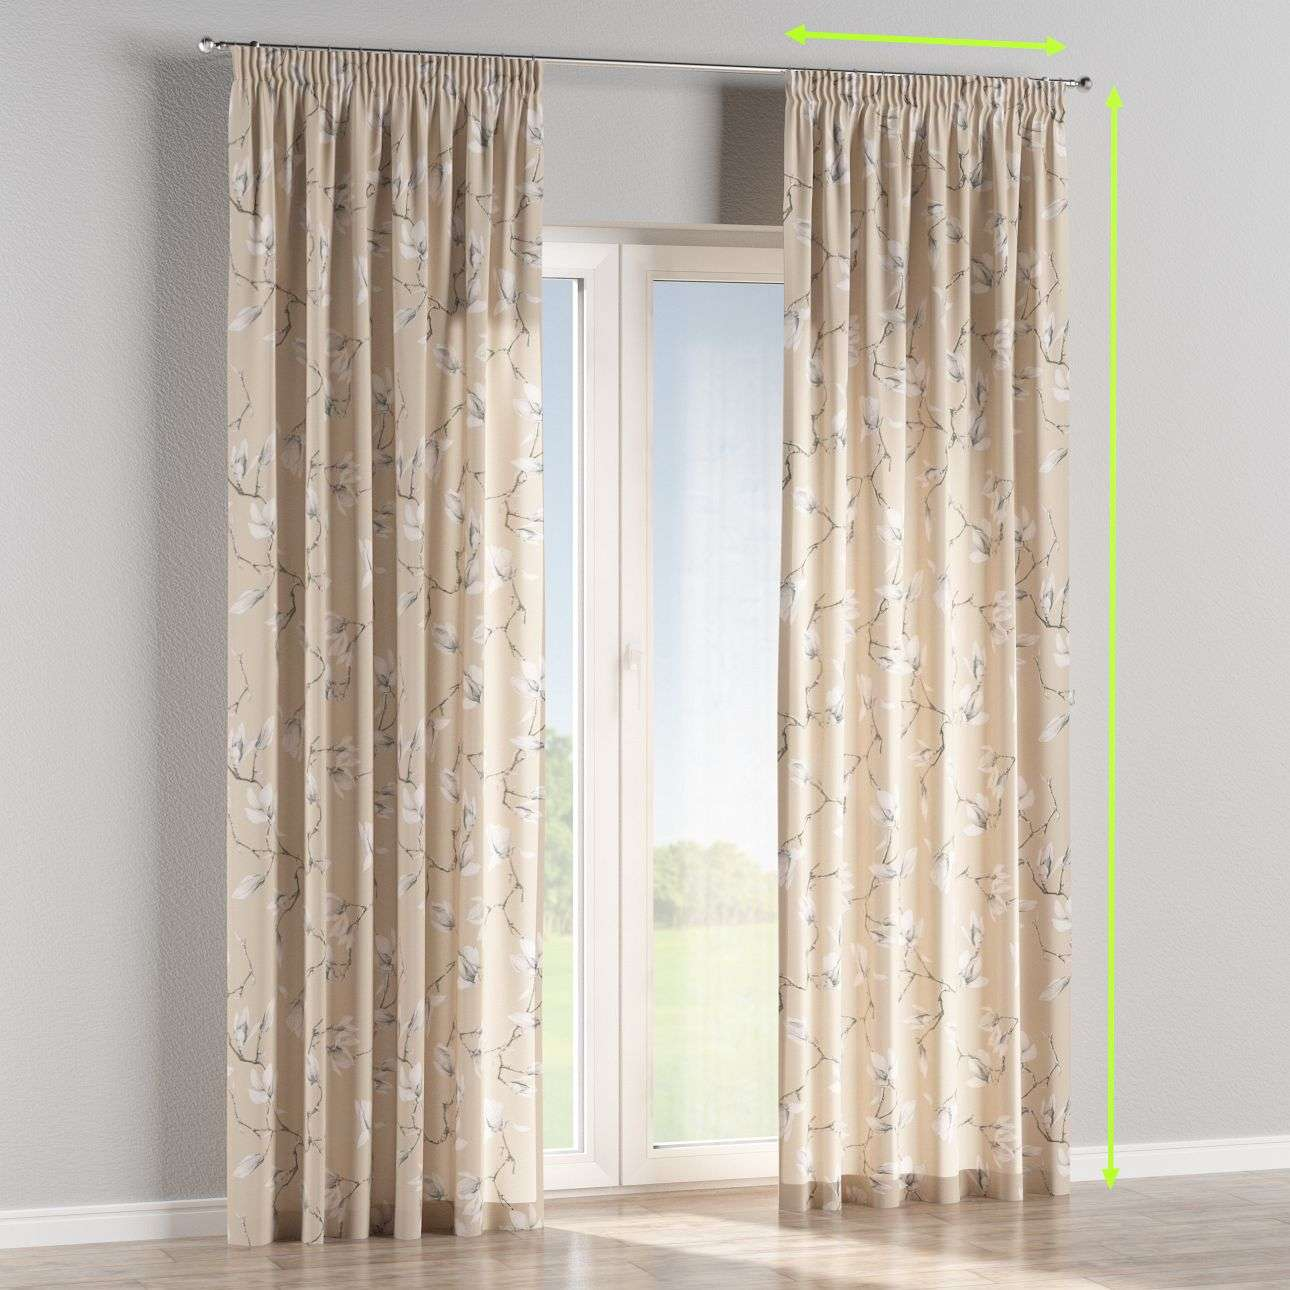 Pencil pleat lined curtains in collection Flowers, fabric: 311-12